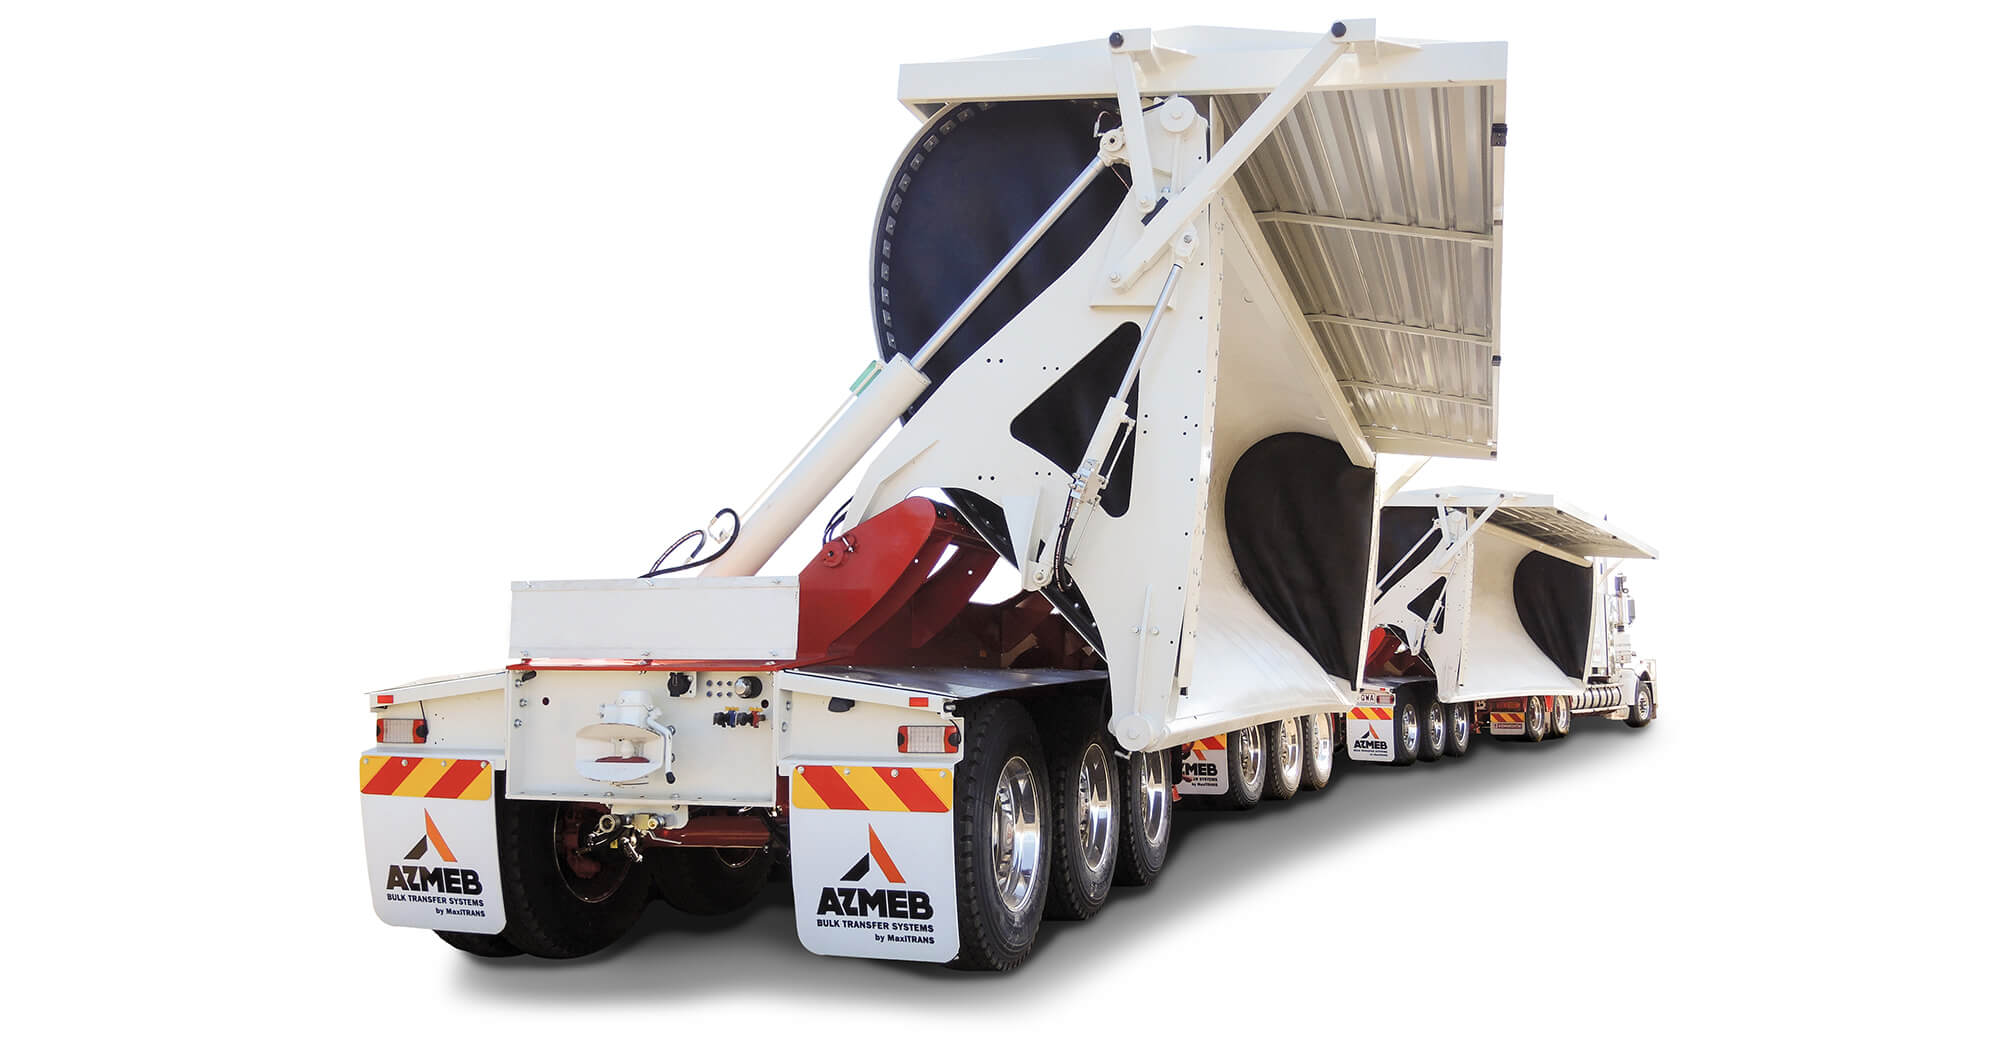 AZMEB Flex Side Tipper